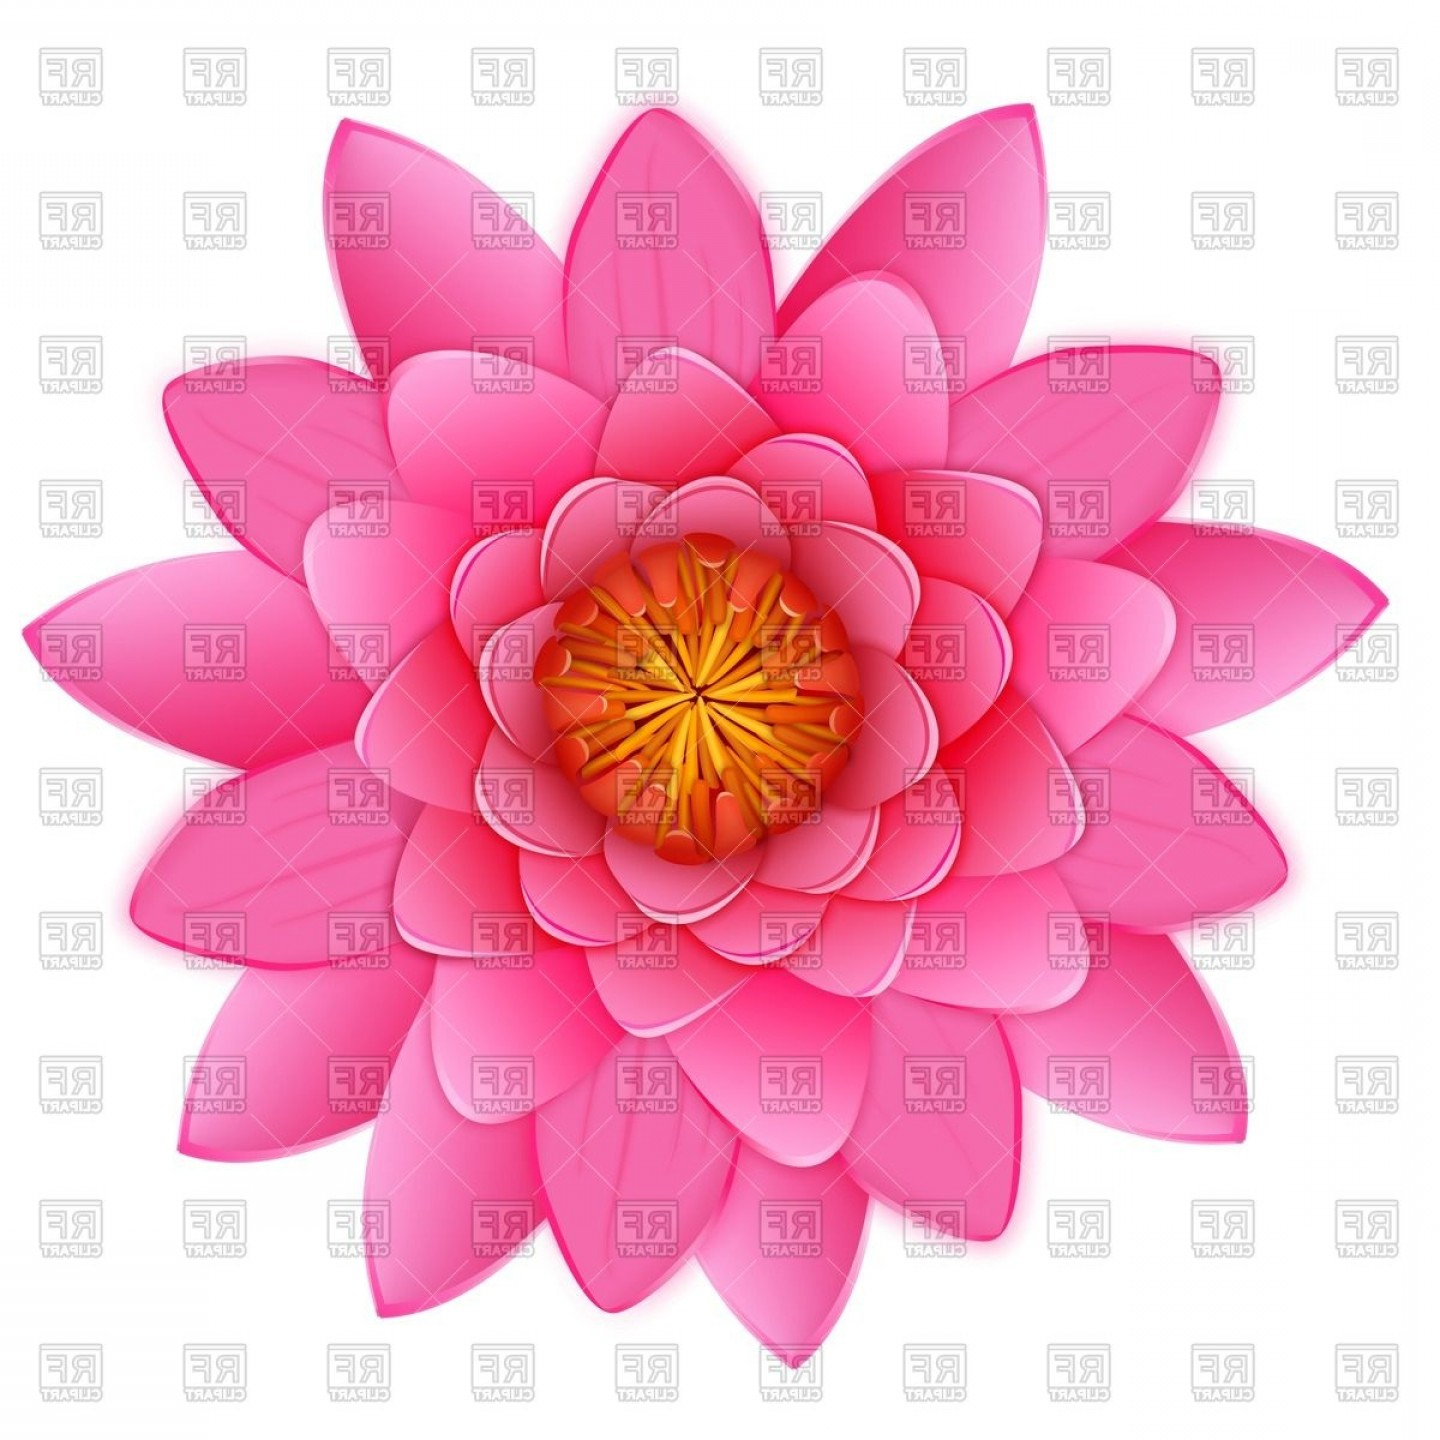 Icon Of Flower Vectors: Spa Therapy Lotus Flower Icon Vector Clipart